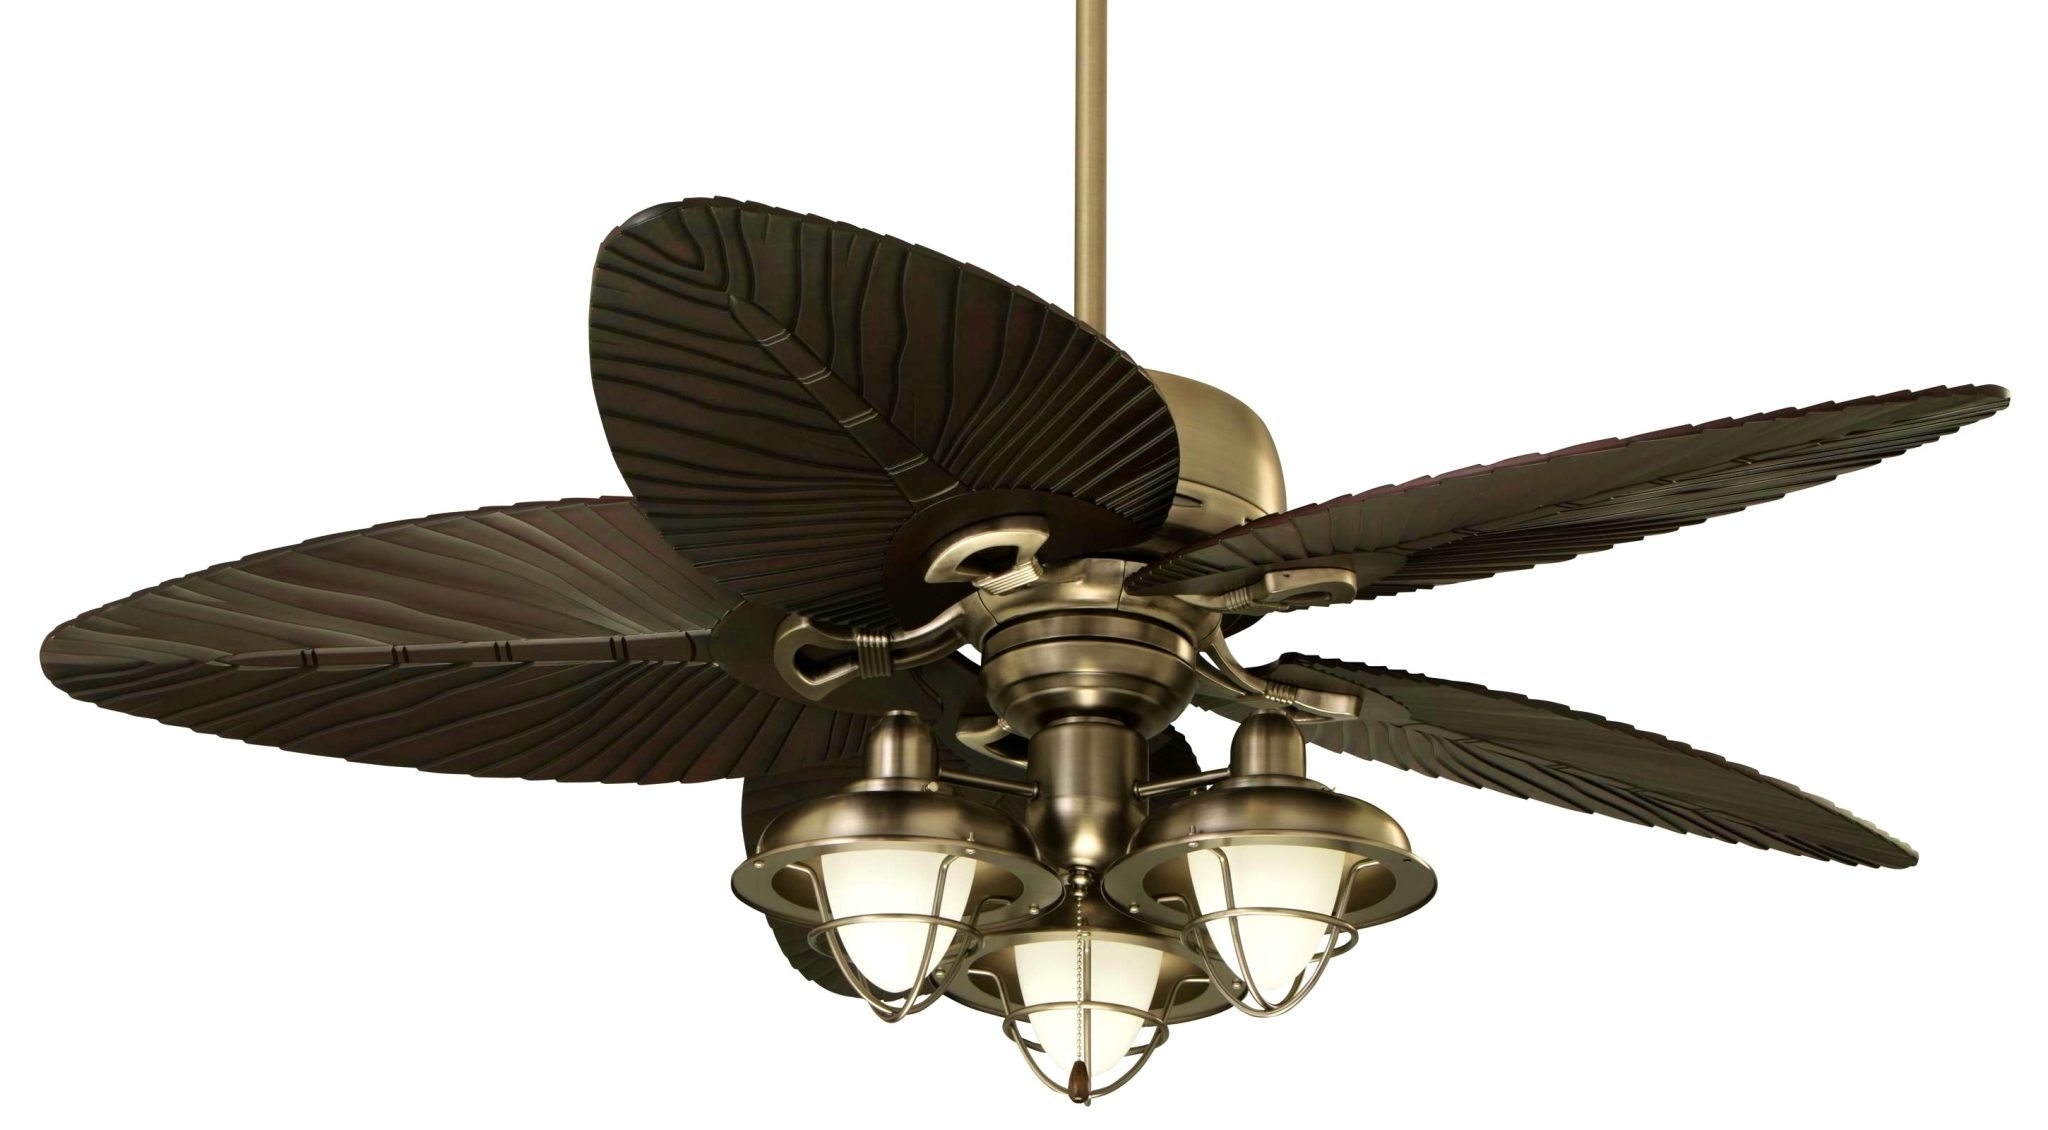 Famous Ceiling: Astounding Lowes Outdoor Ceiling Fans With Lights Home With Lowes Outdoor Ceiling Fans With Lights (View 3 of 20)